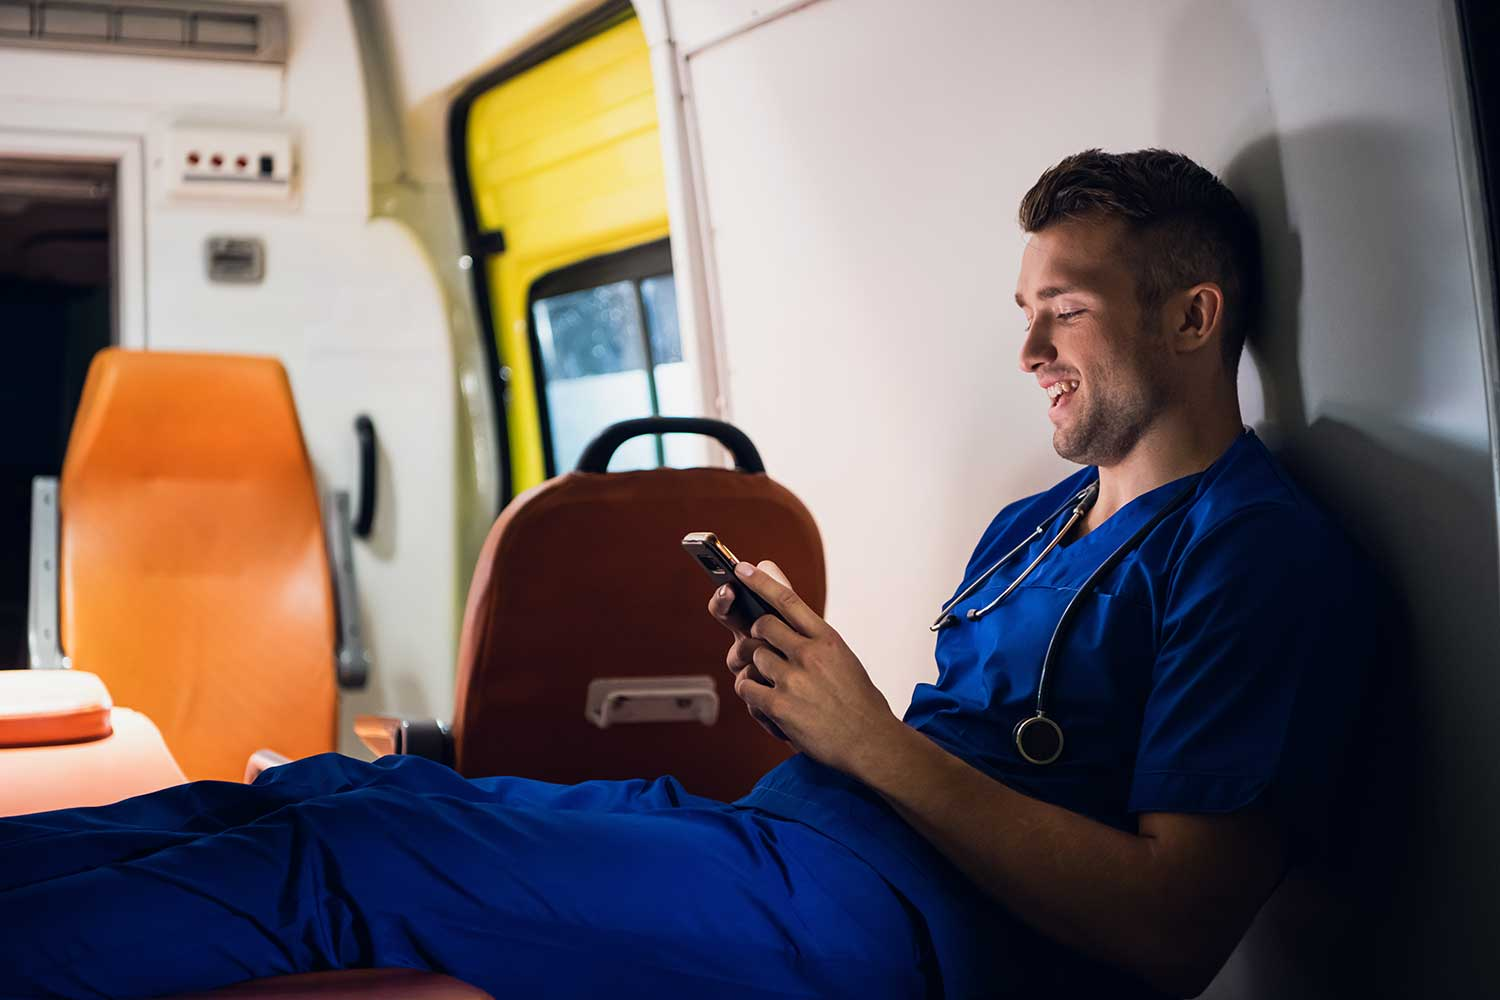 South Central Ambulance Service chooses to modernise its workforce management with Allocate Software